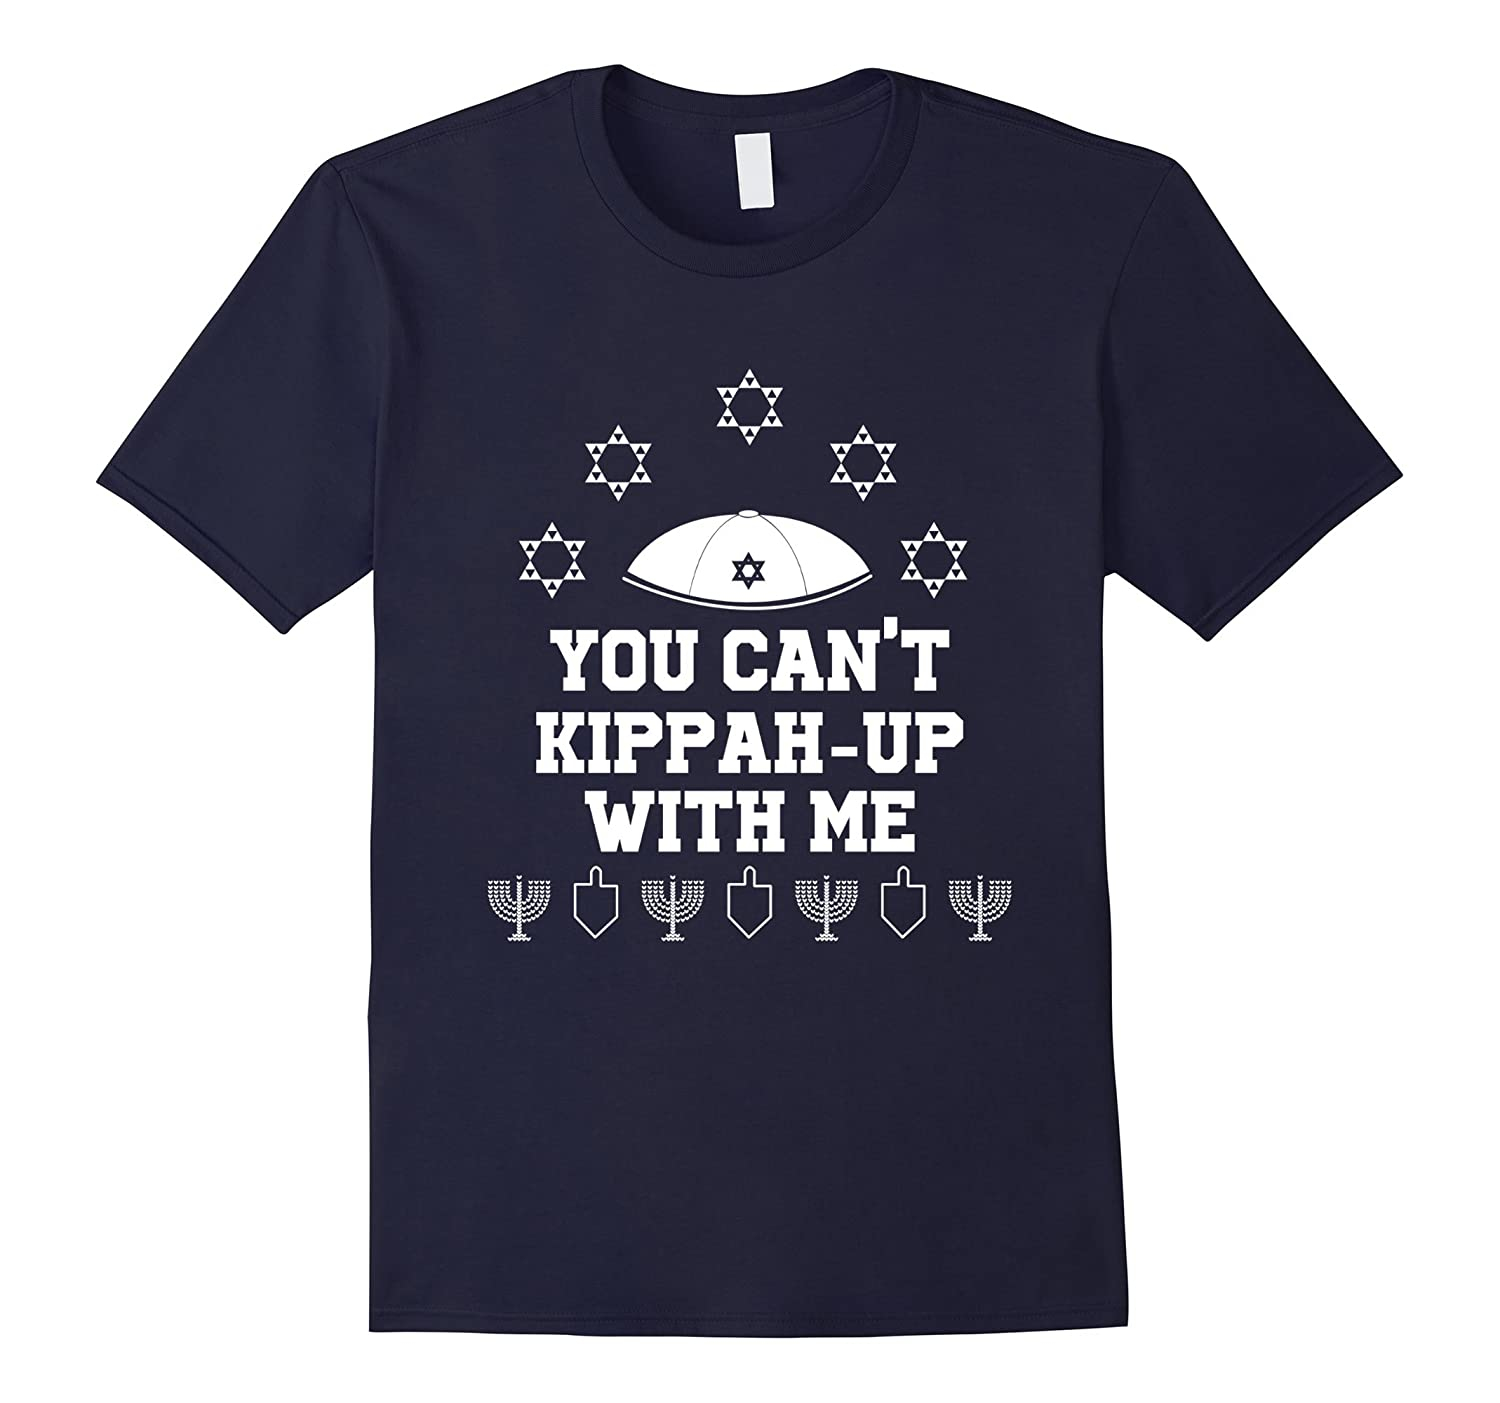 Can't Kippah Up With Me T-Shirt Jewish Hanukkah Ugly Sweater-CL